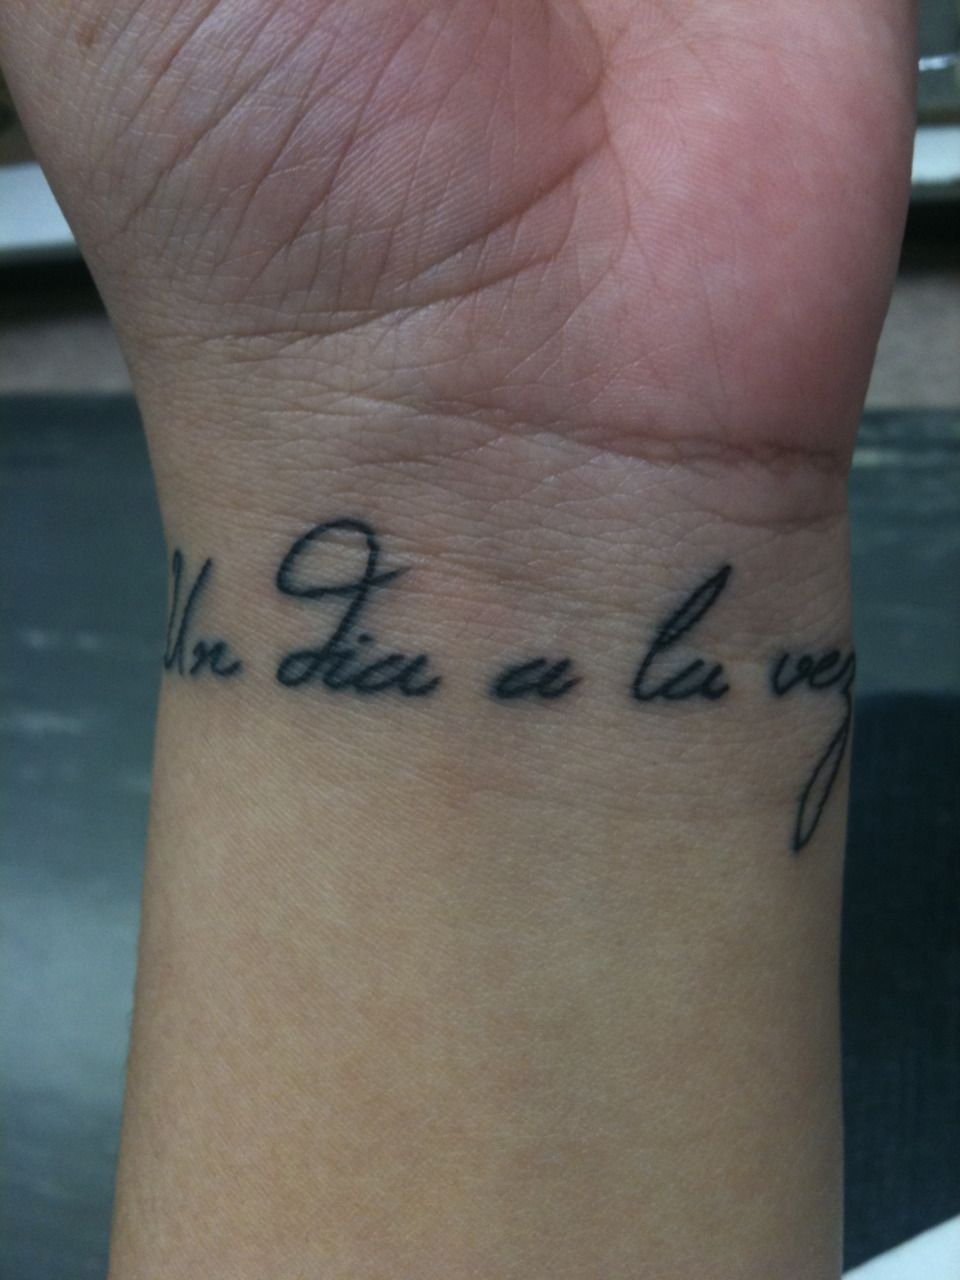 """This tattoo says """"Un dia a la vez"""" which means """"One day at a time"""" in  Spanish. It's a daily reminder to take things slow and enjoy life beca… 